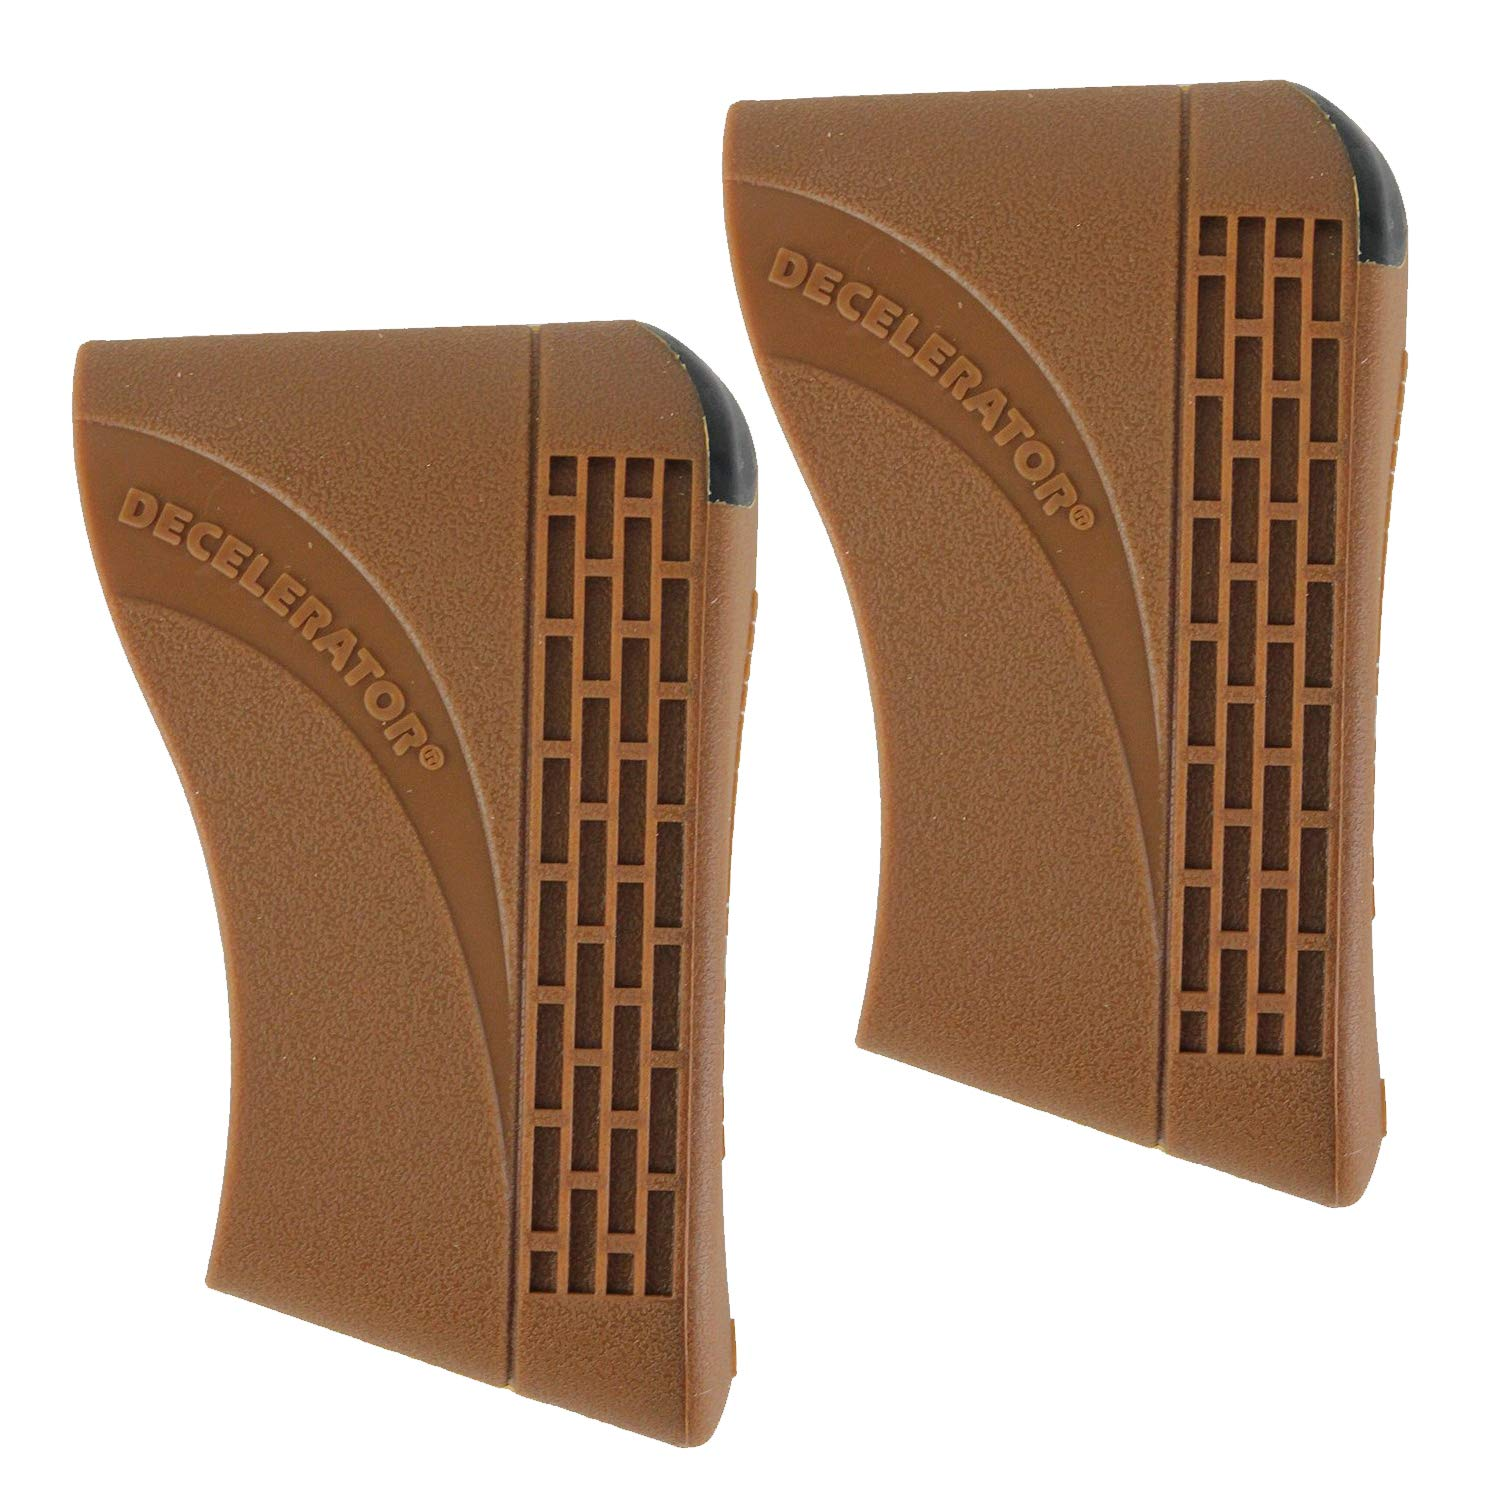 Pachmayr Decelerator Slip On Recoil Pad (2 Pack) by Pachmayr